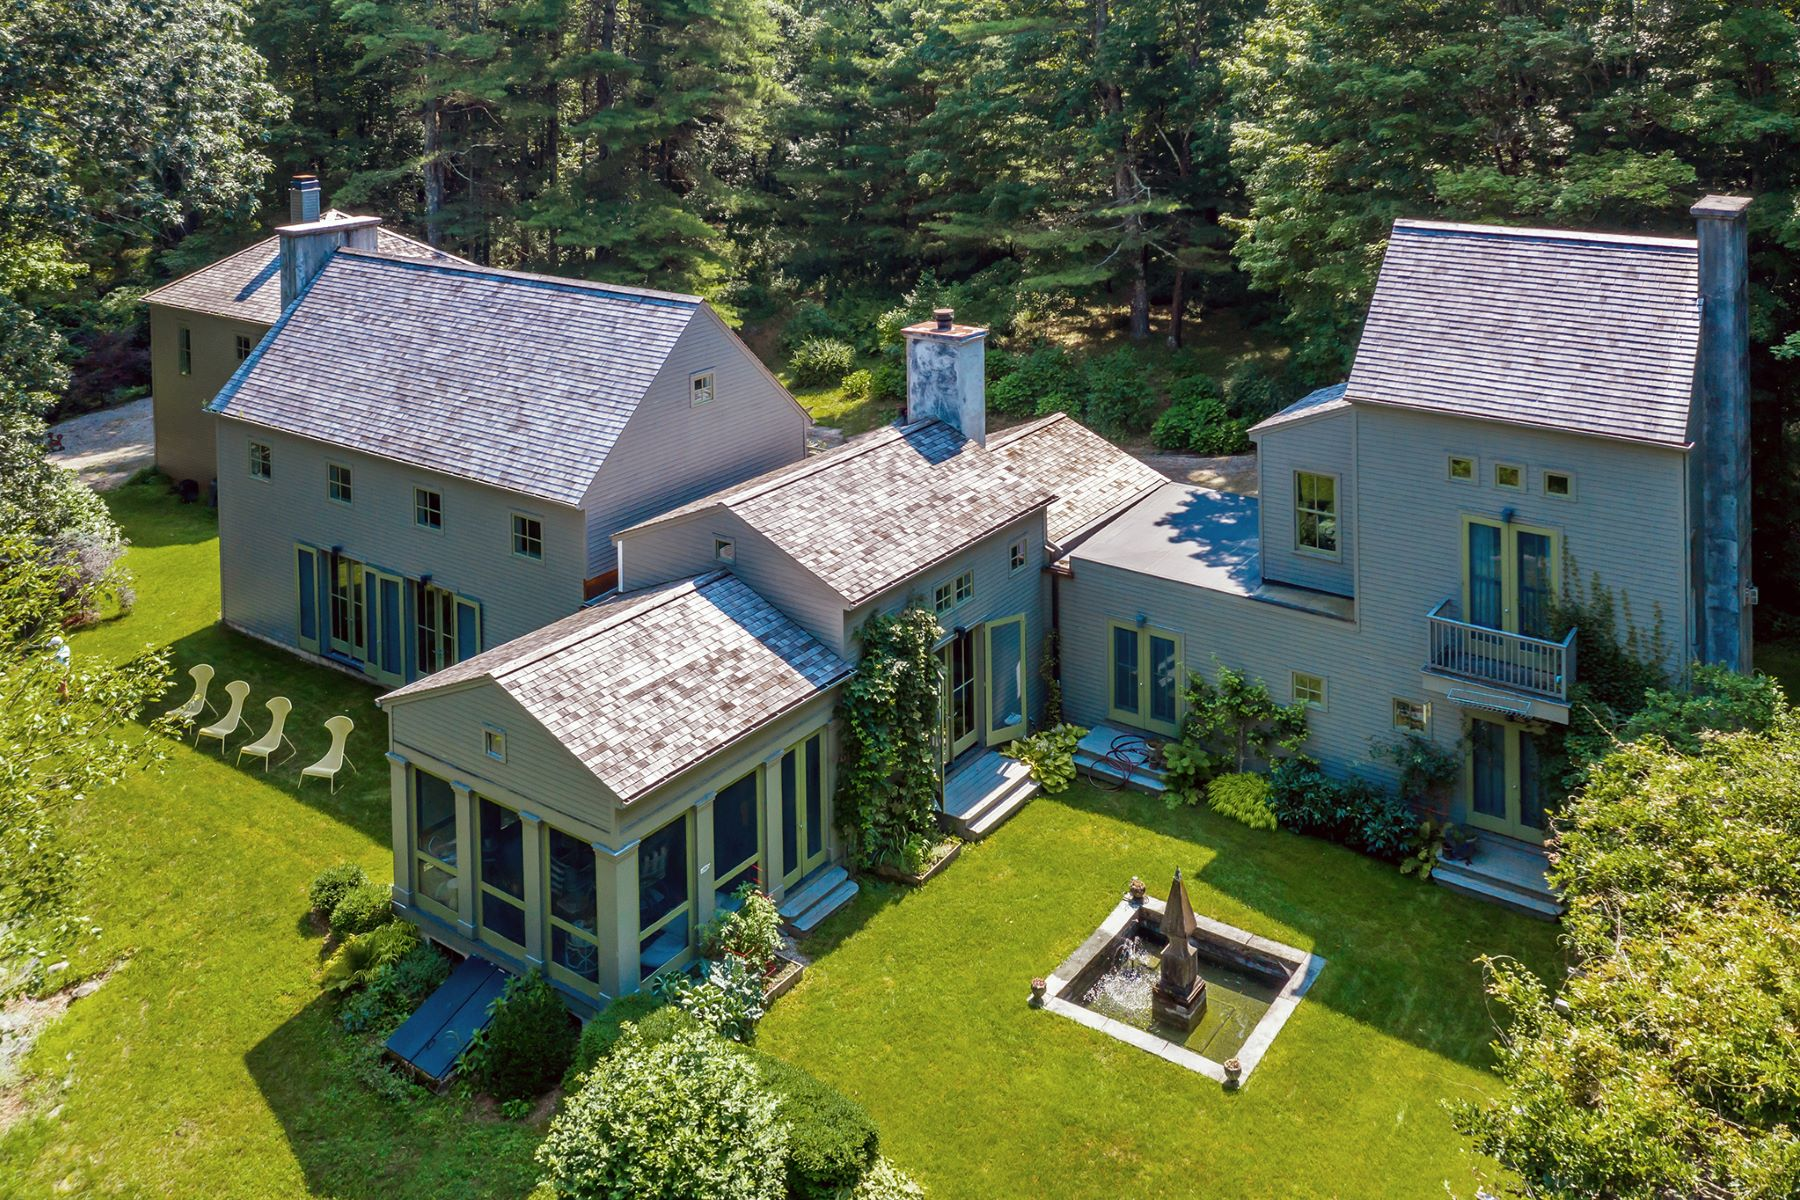 Single Family Homes for Sale at River Run 146 Kent Road South Cornwall, Connecticut 06754 United States